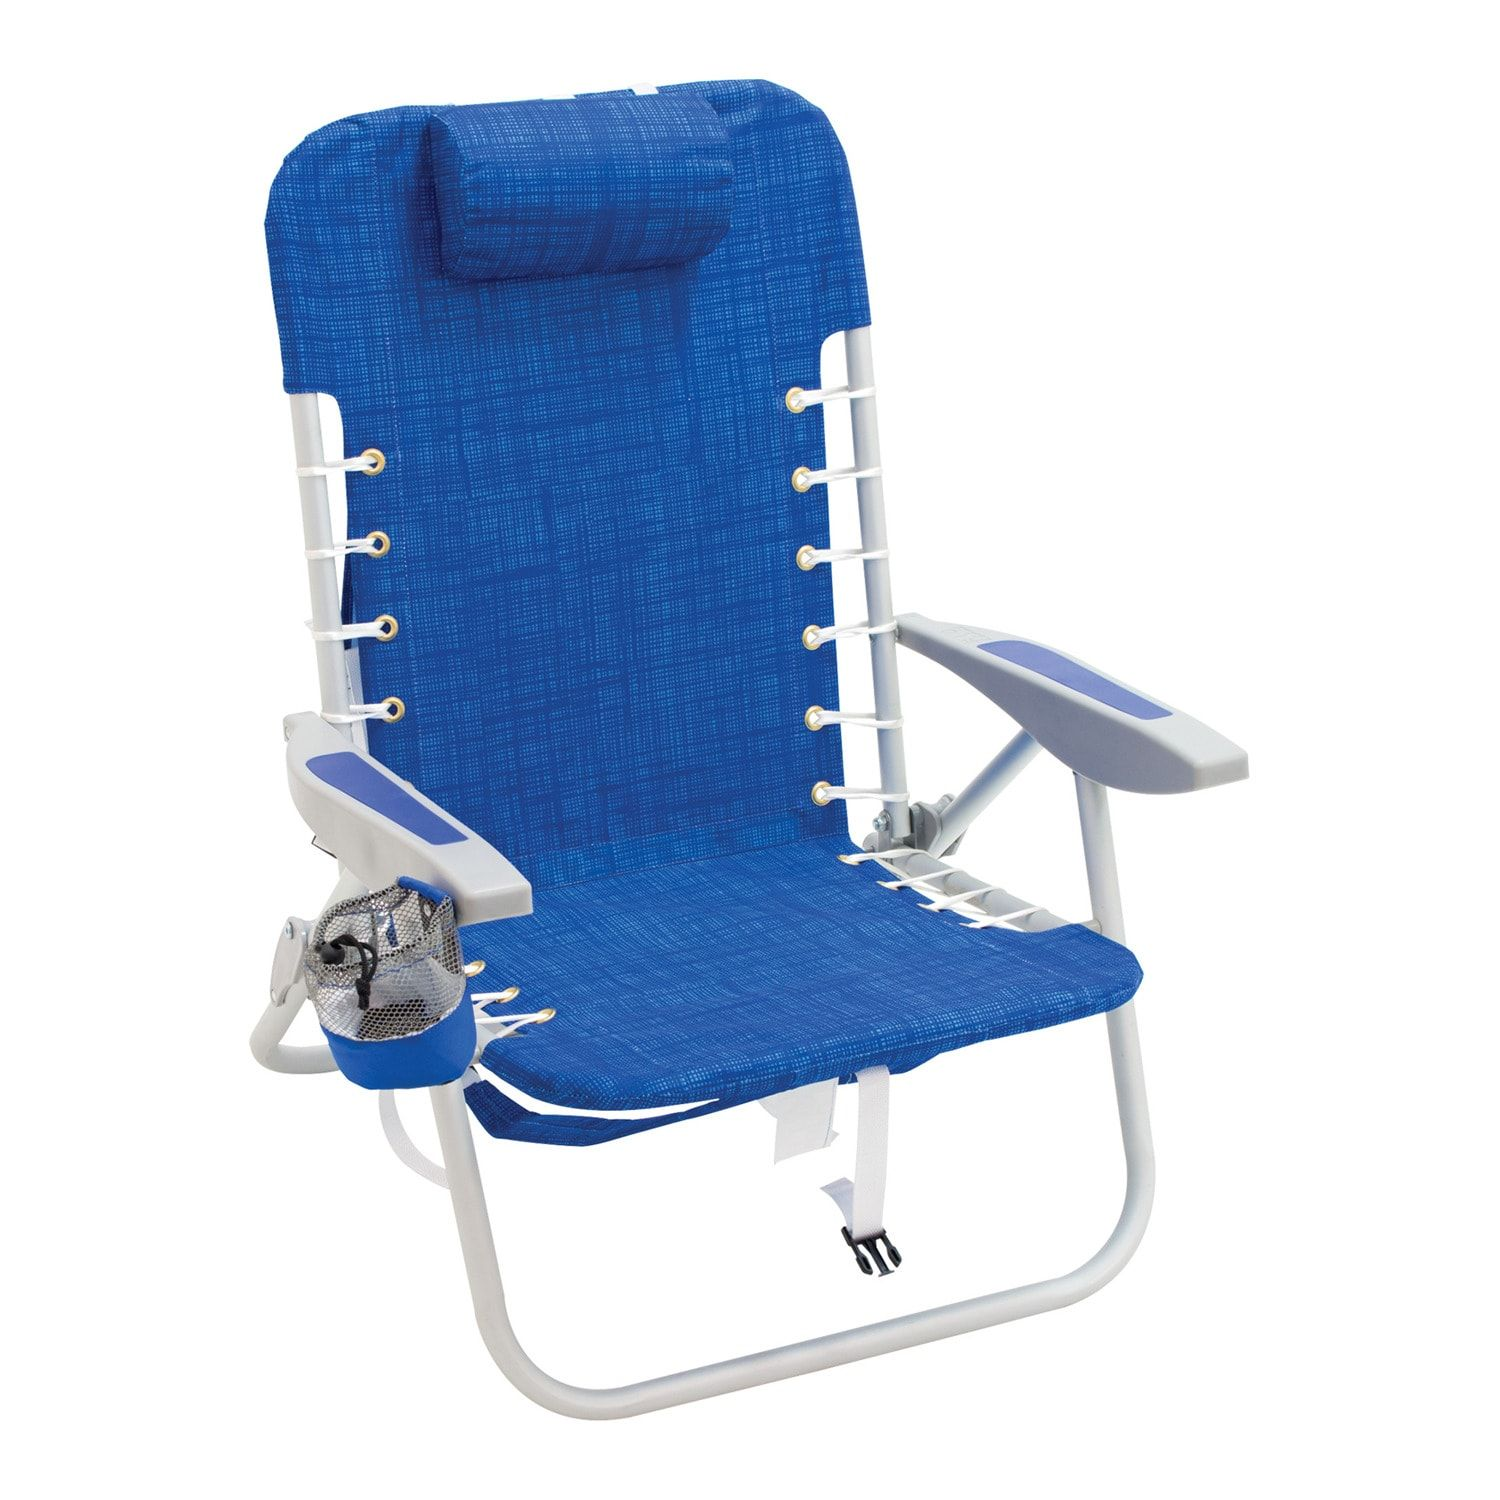 Rio Brands LaceUp Aluminum Backpack Portable Chair in